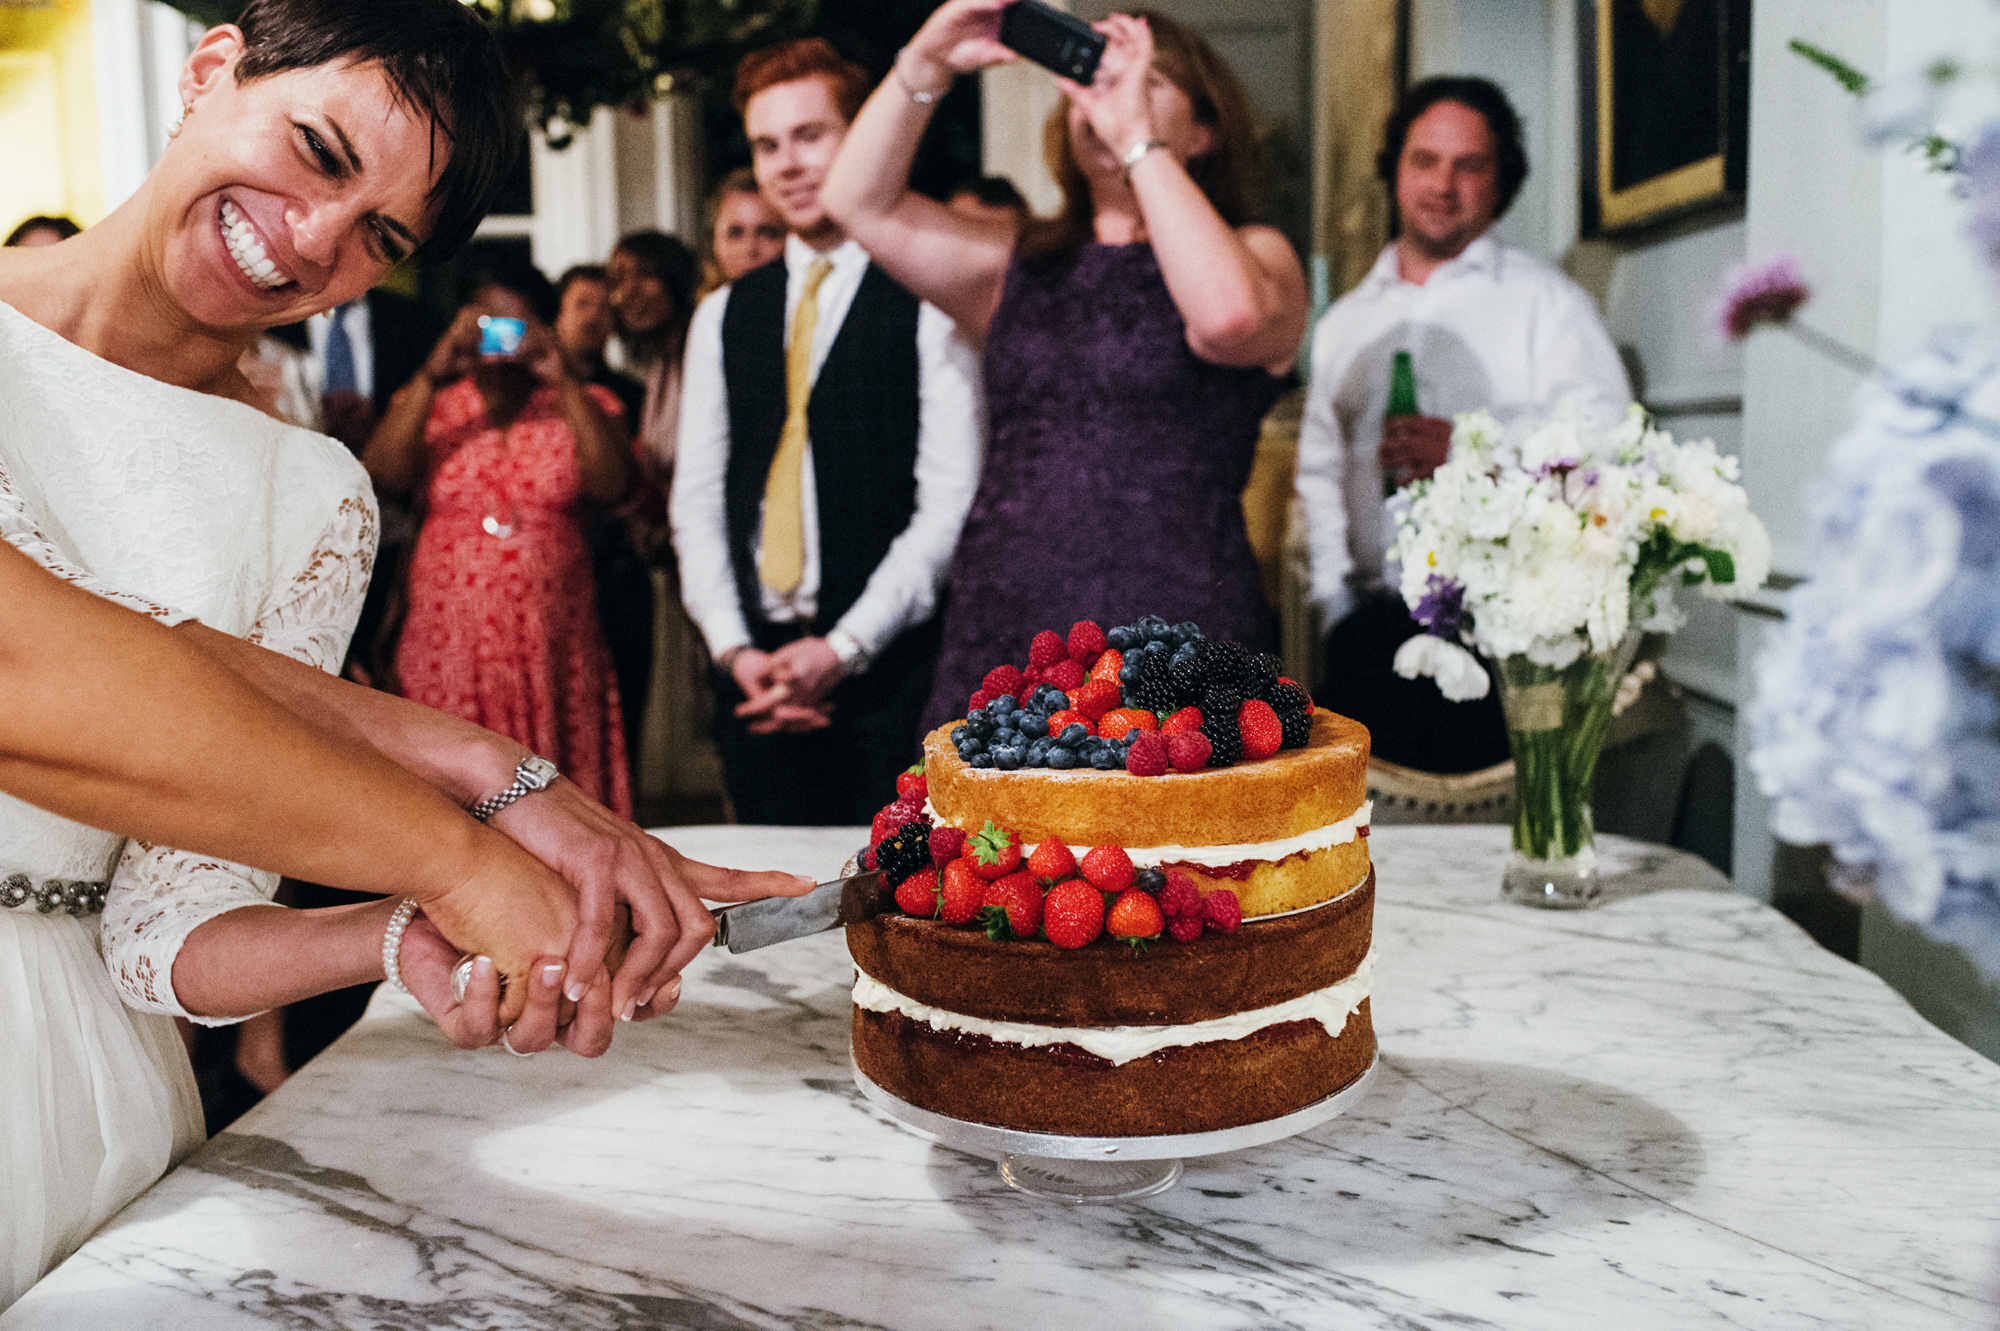 Cutting the naked wedding cake with strawberries - quirky creative gay friendly wedding photographer The Roost Dalston London wedding photographer © Babb Photo